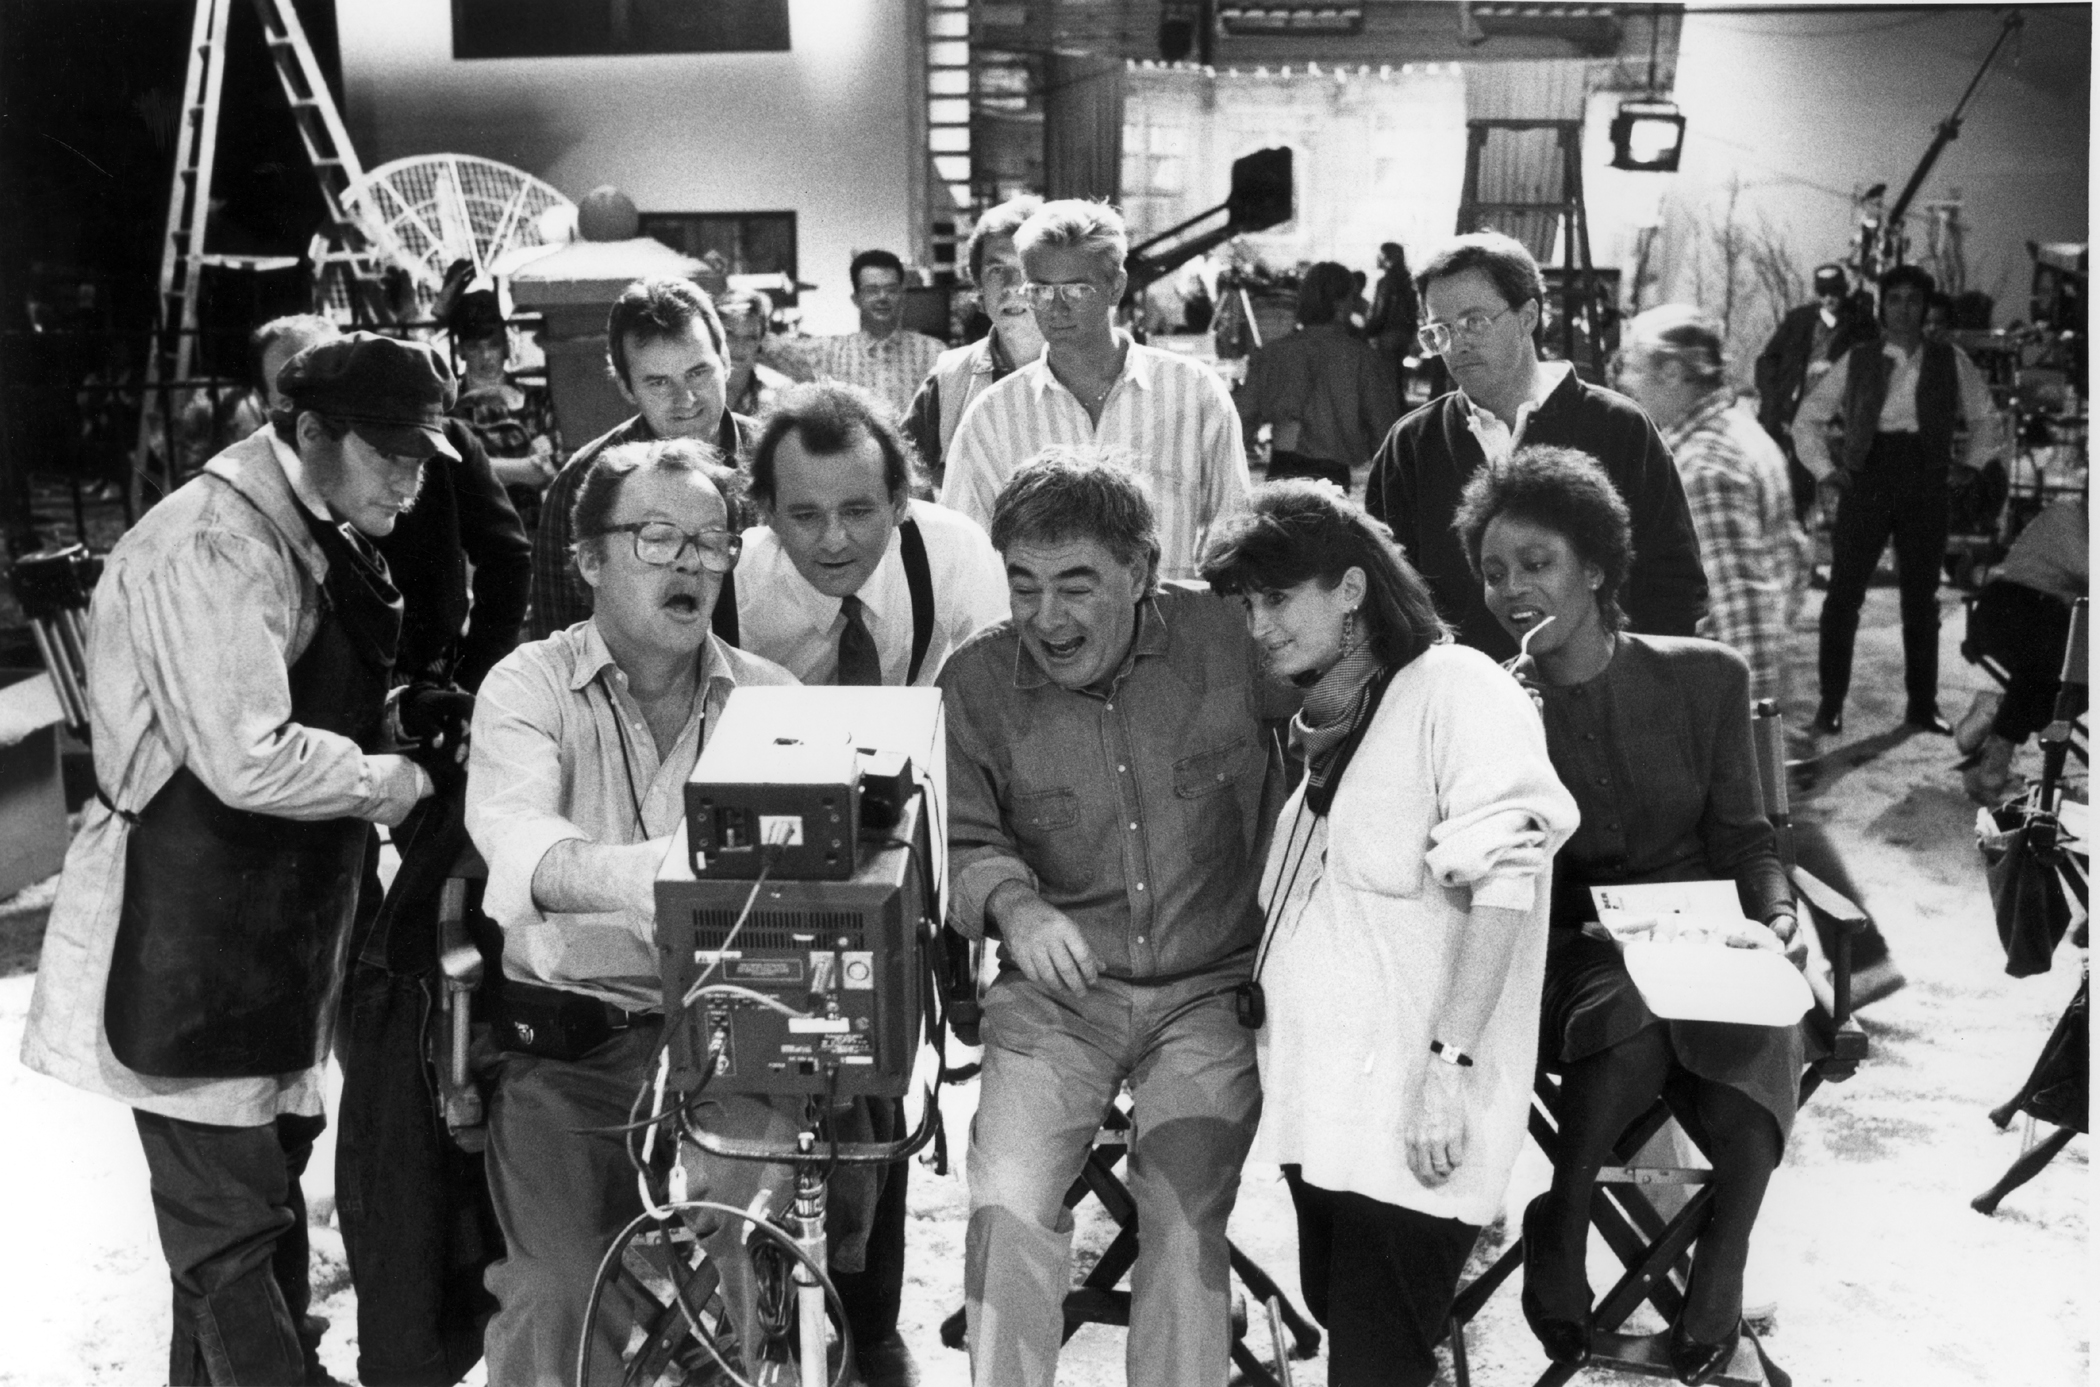 While filming the comedy Scrooged (1988), with star Bill Murray and director Richard Donner.